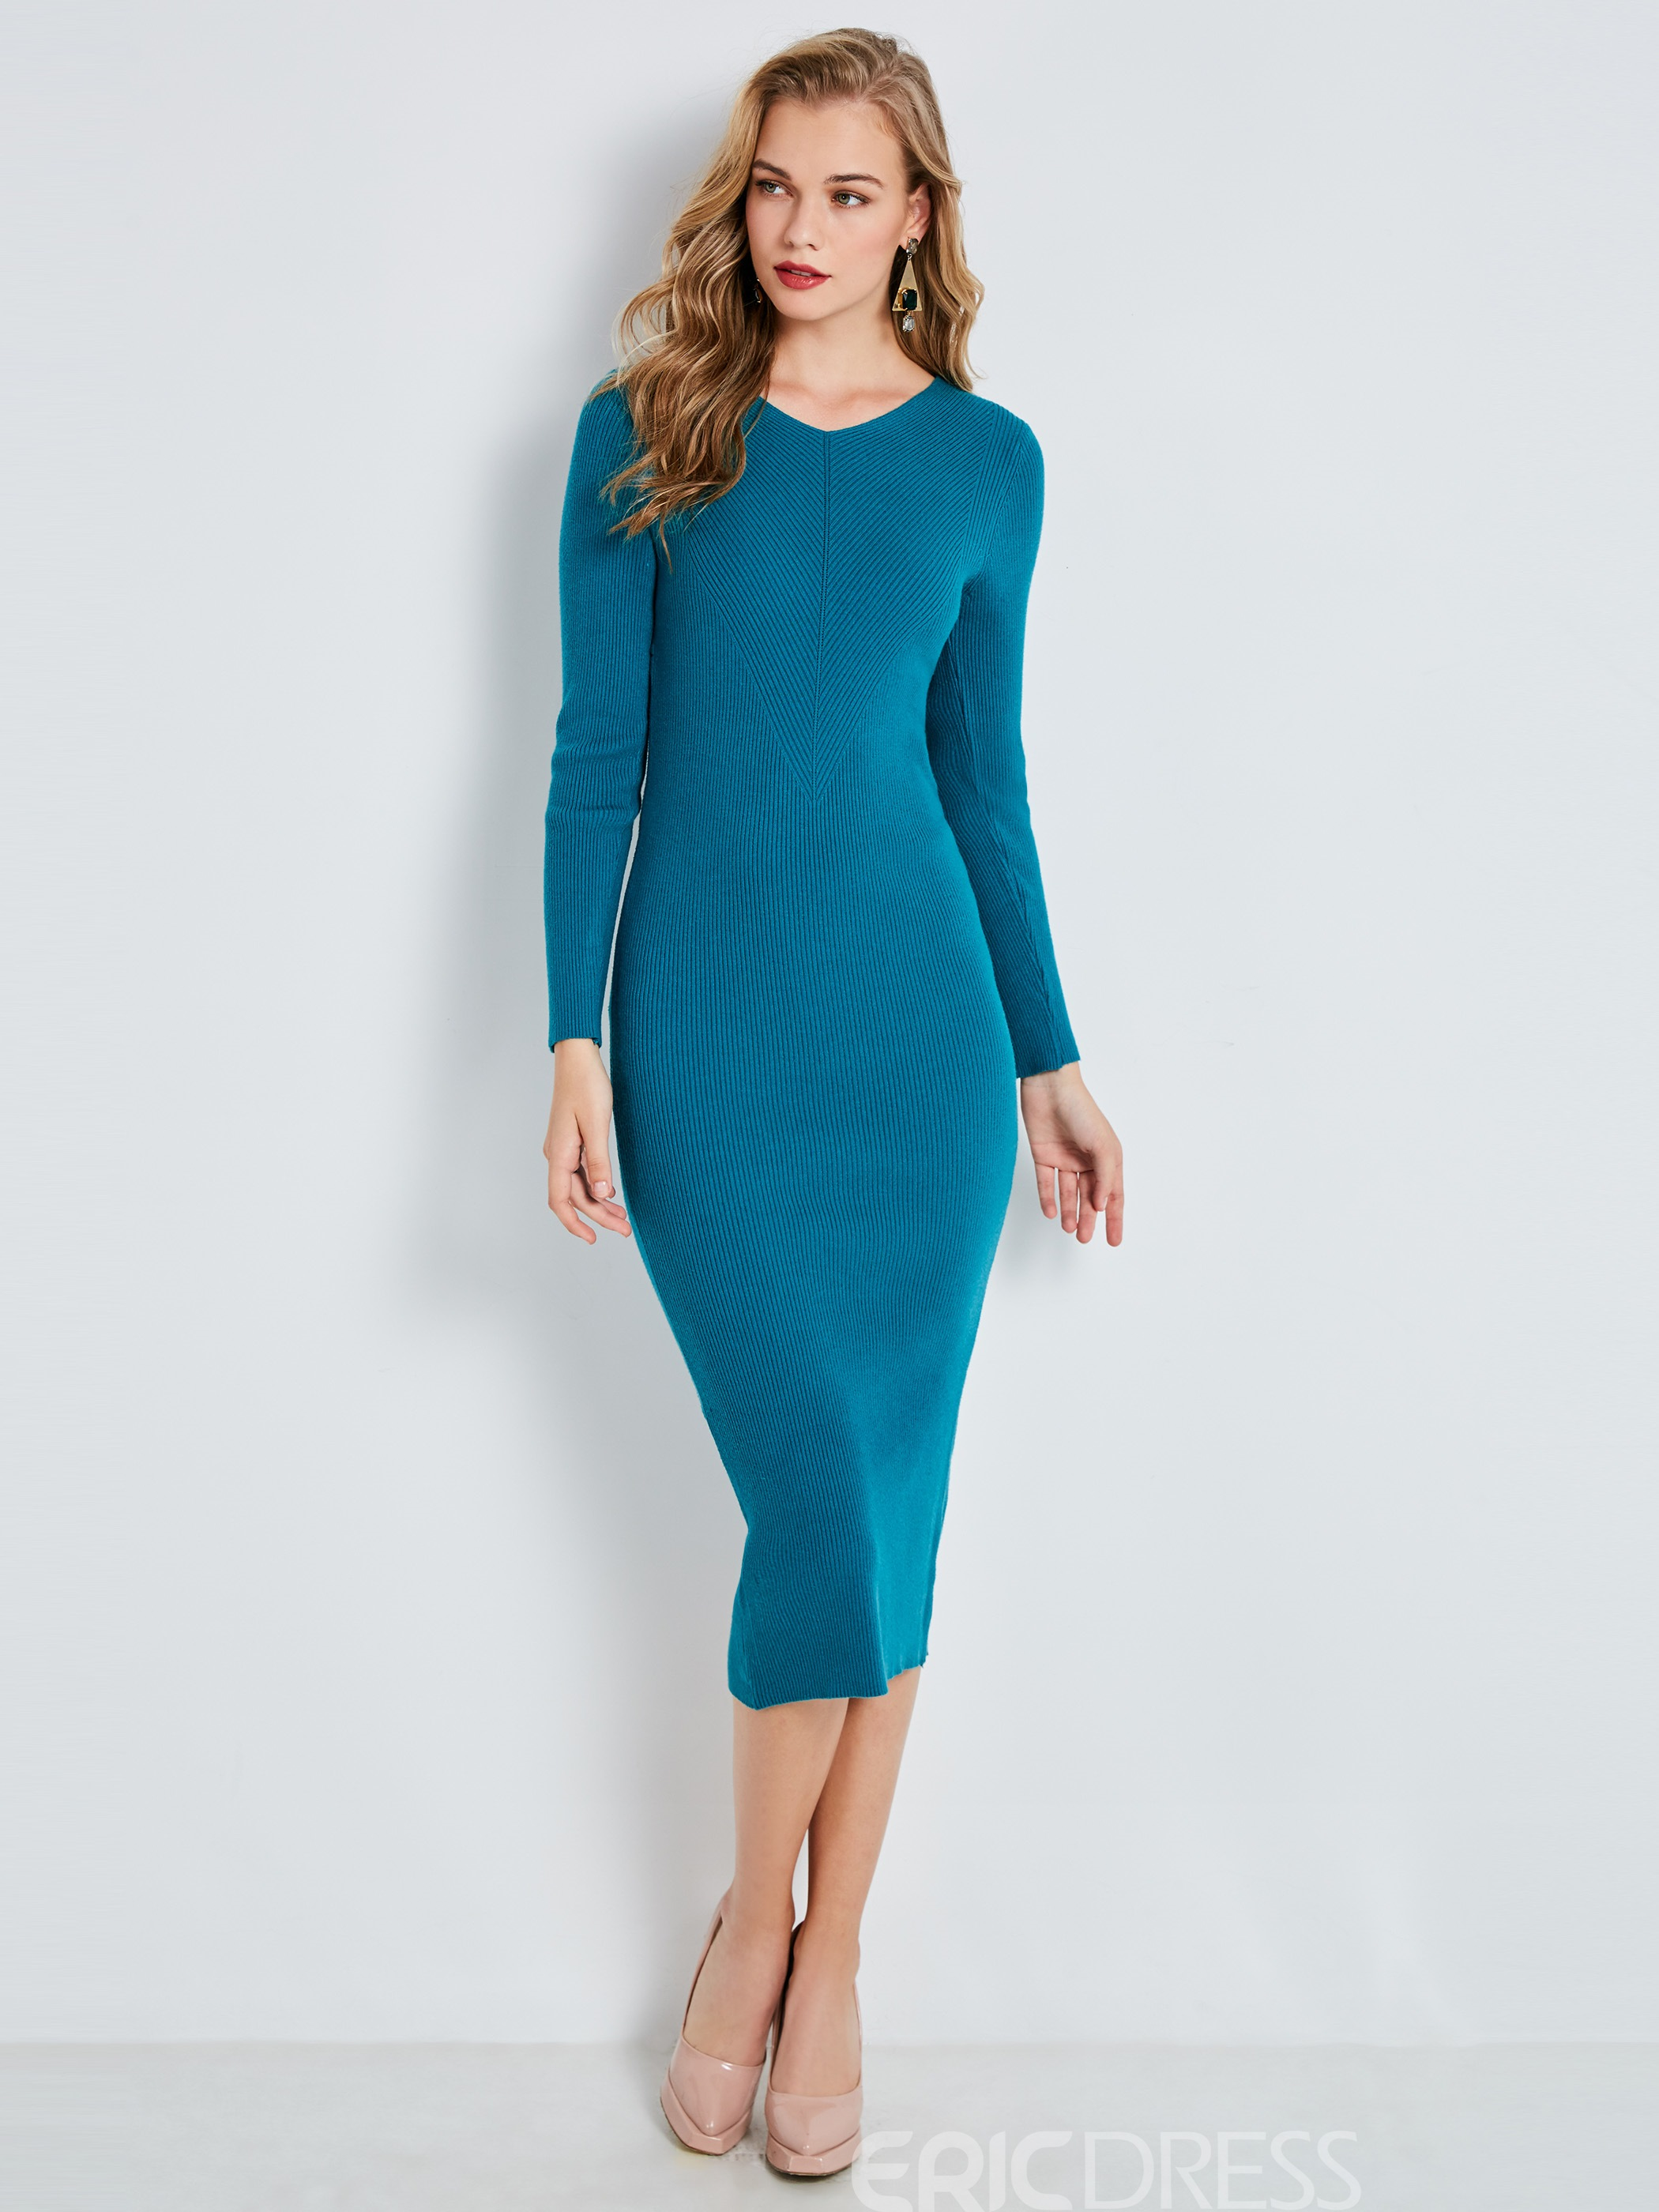 Ericdress V-Neck Mid-Calf Plain Long Sleeve Bodycon Dress 12977143 ...